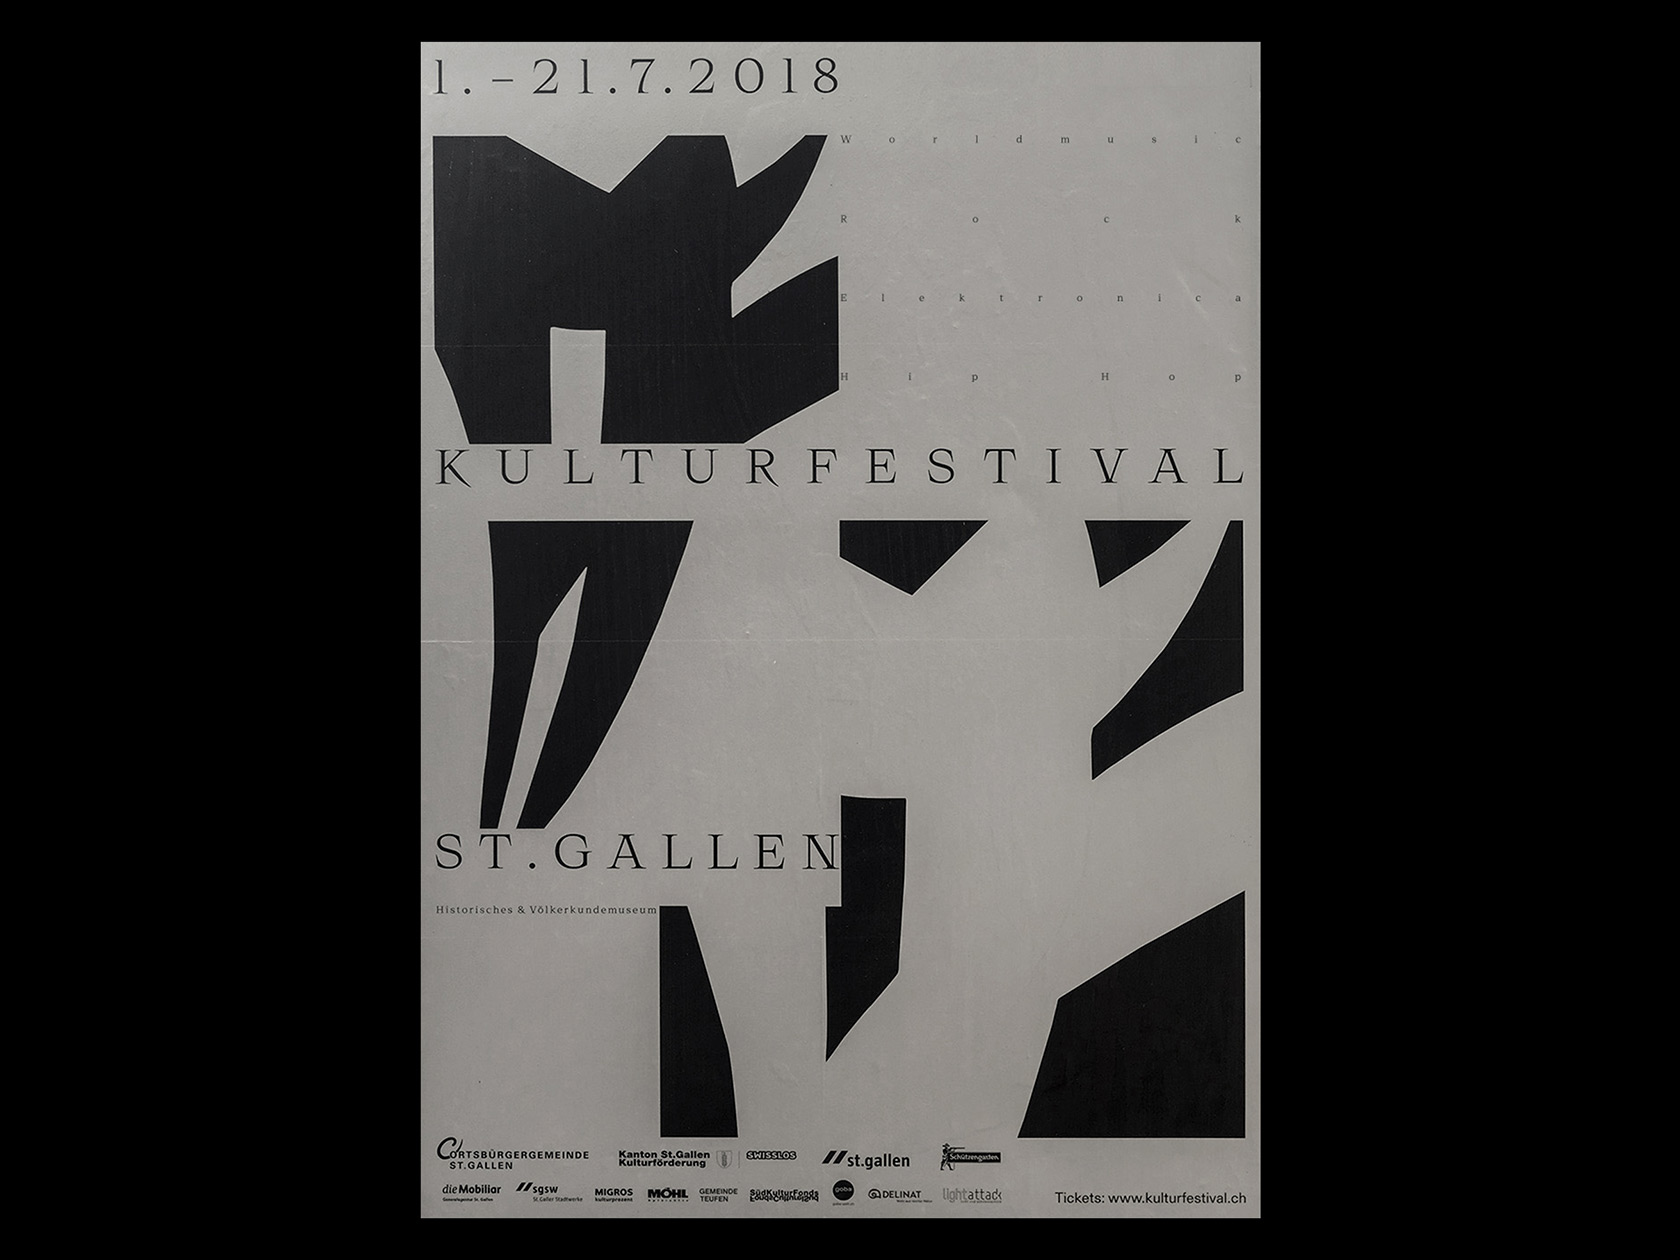 collide24 1 kulturfestival st gallen - combining graphic design with musical and cultural roots